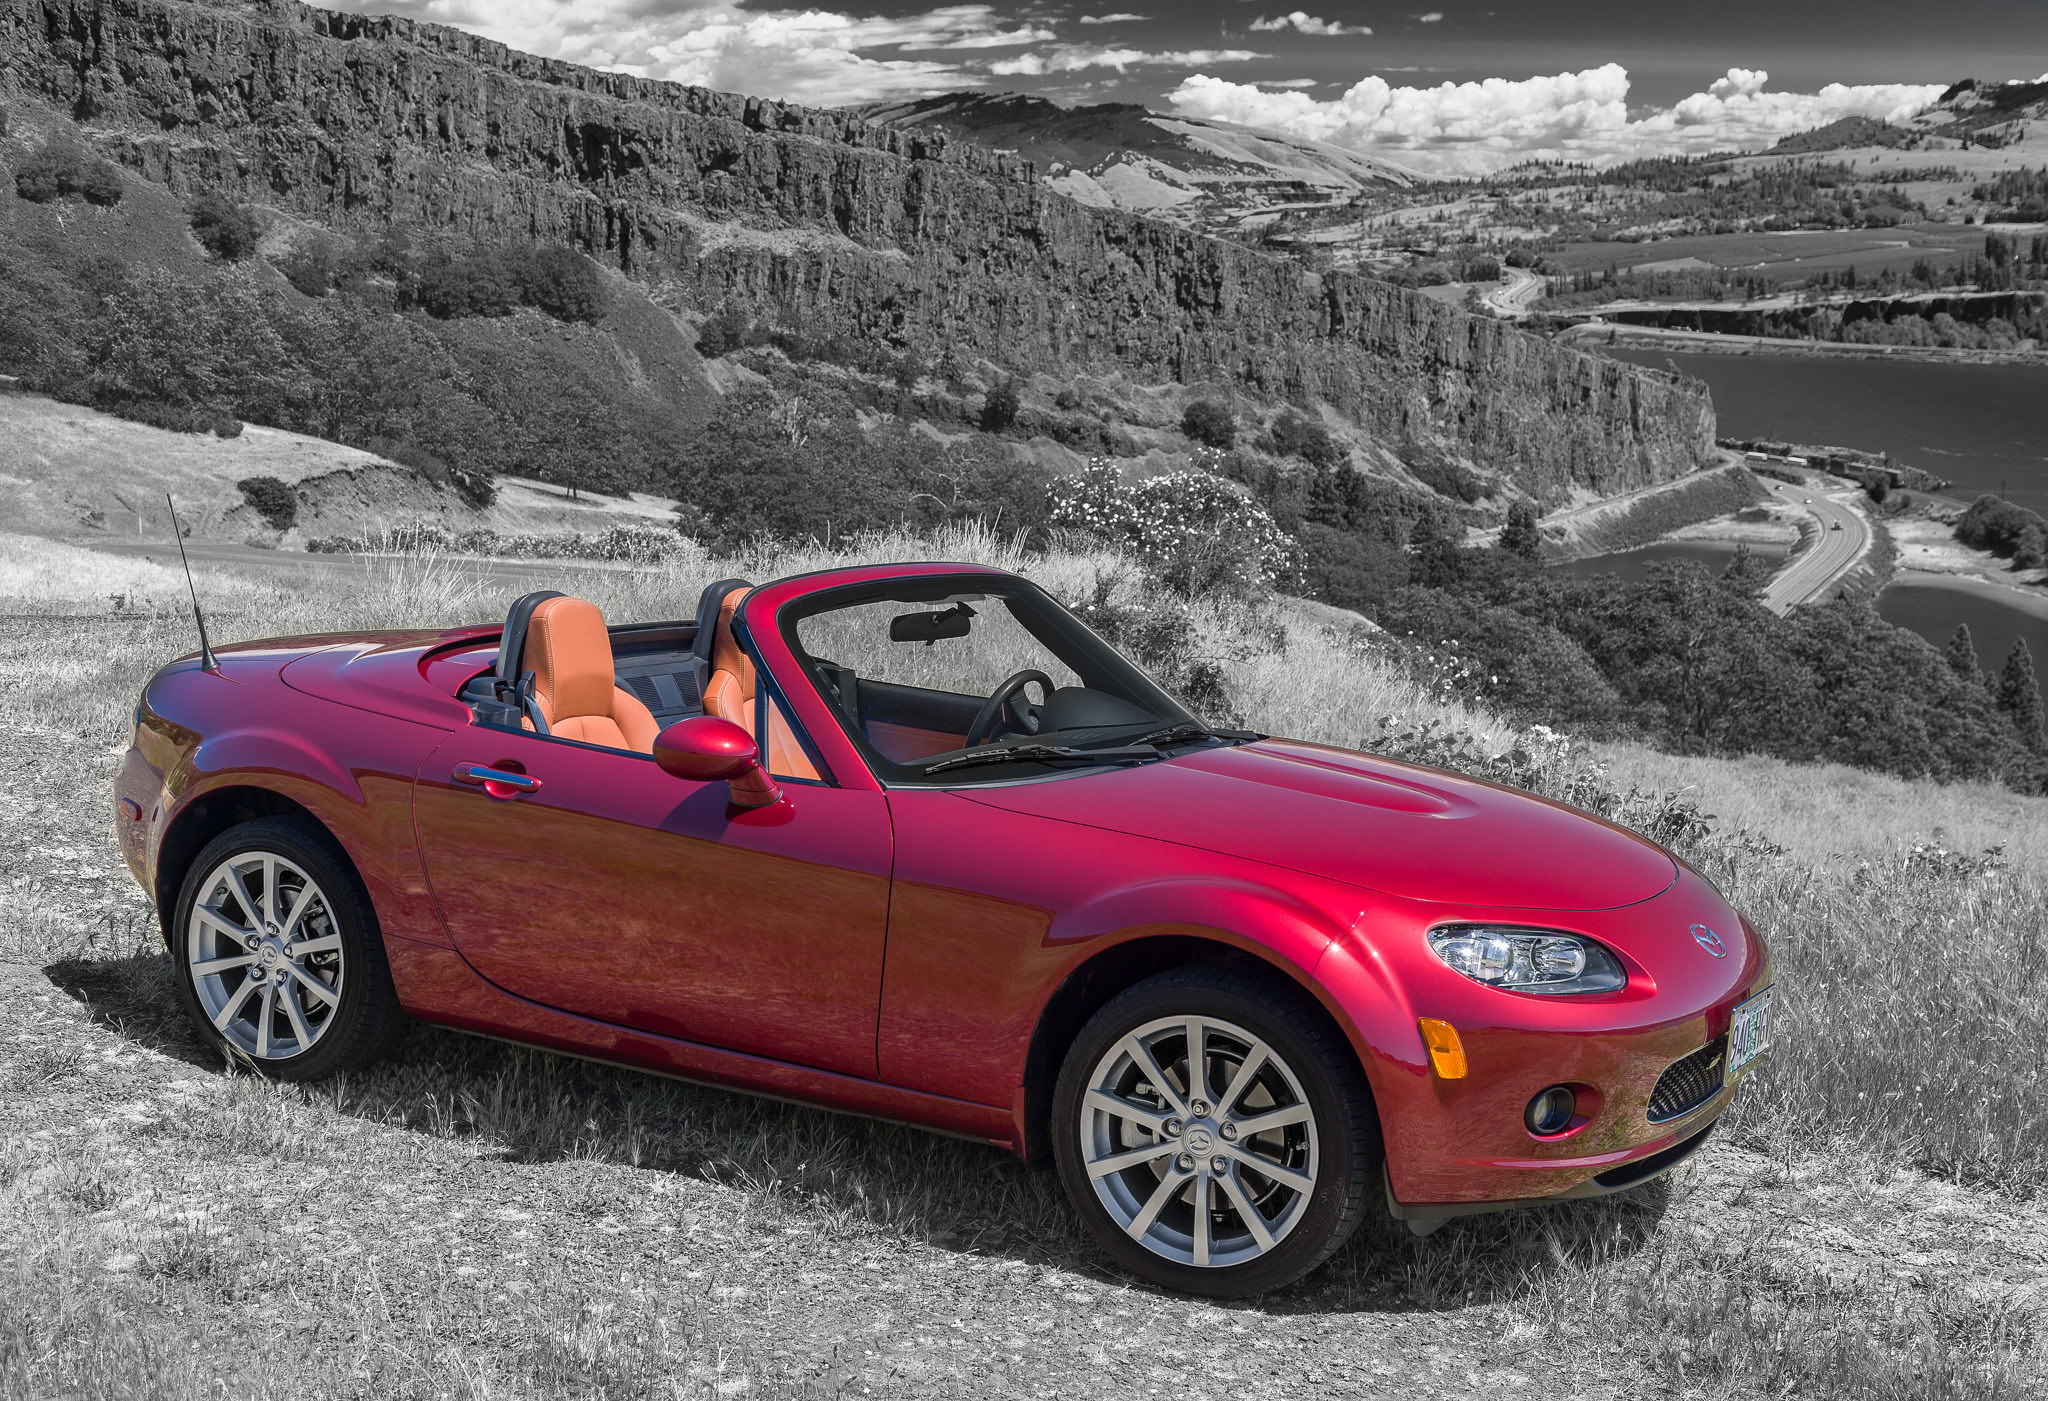 Miata MX5 above Syncline